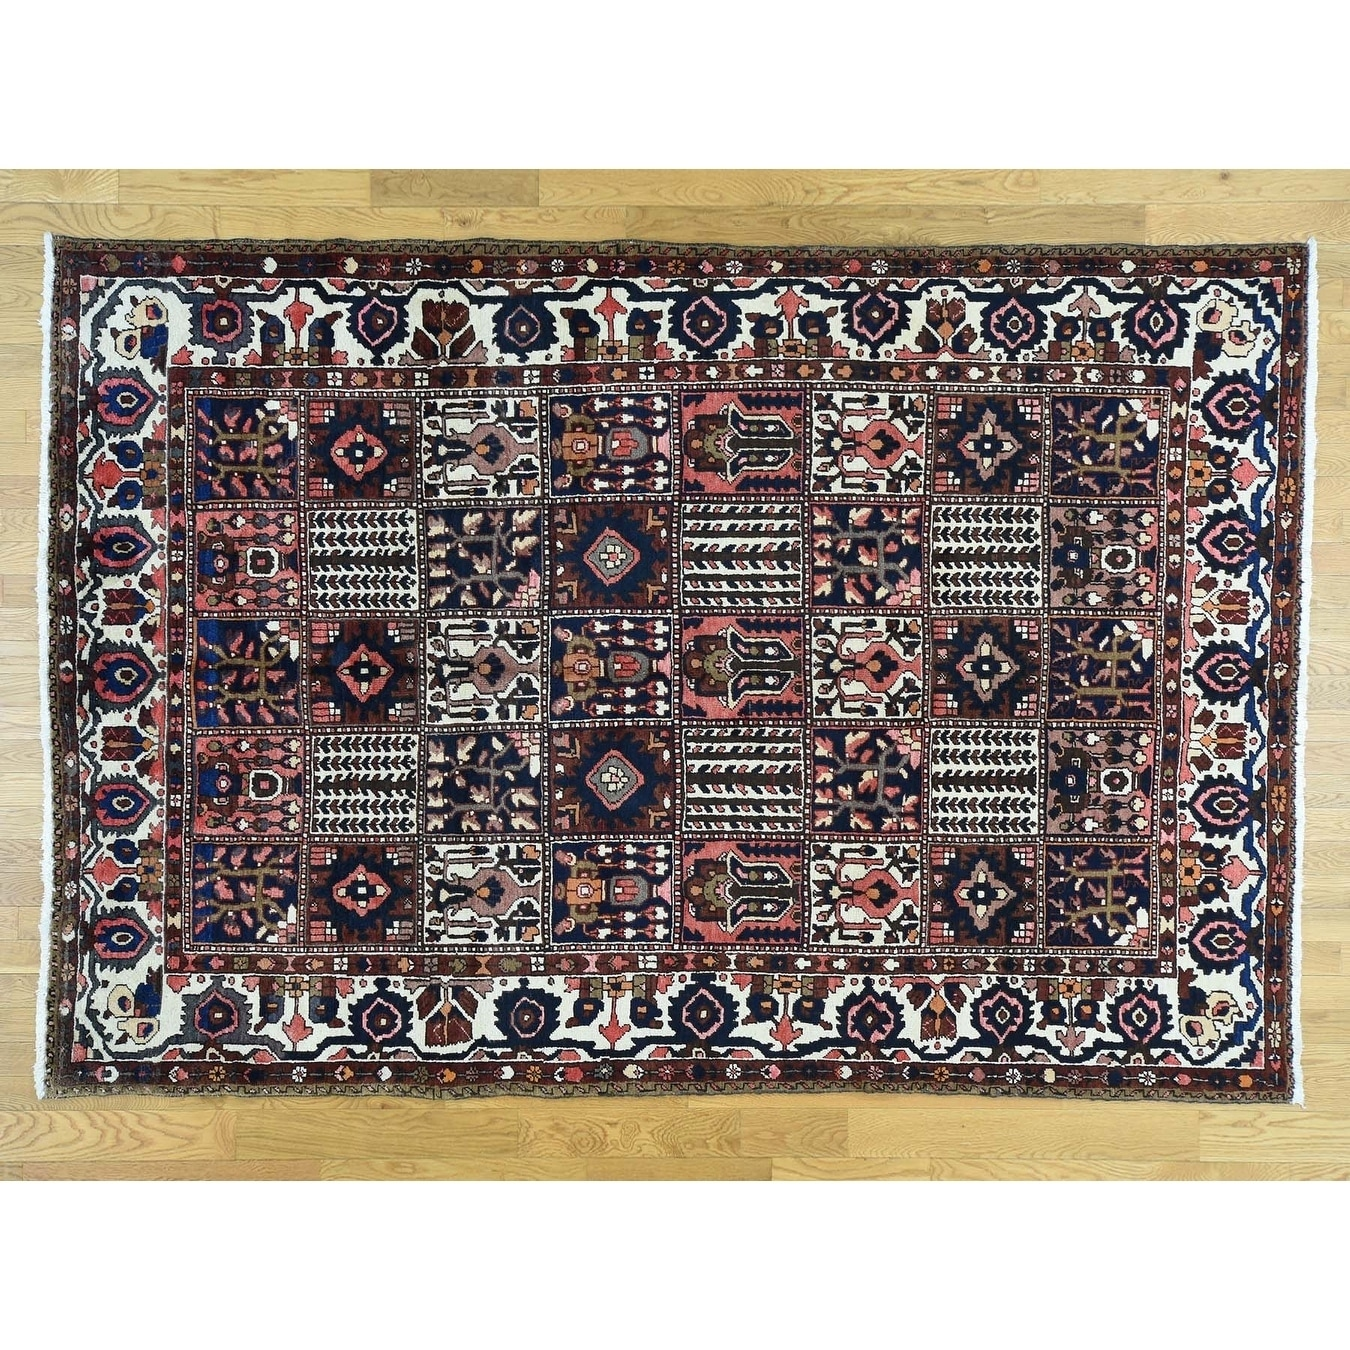 Hand Knotted Multicolored Persian with Wool Oriental Rug - 7 x 105